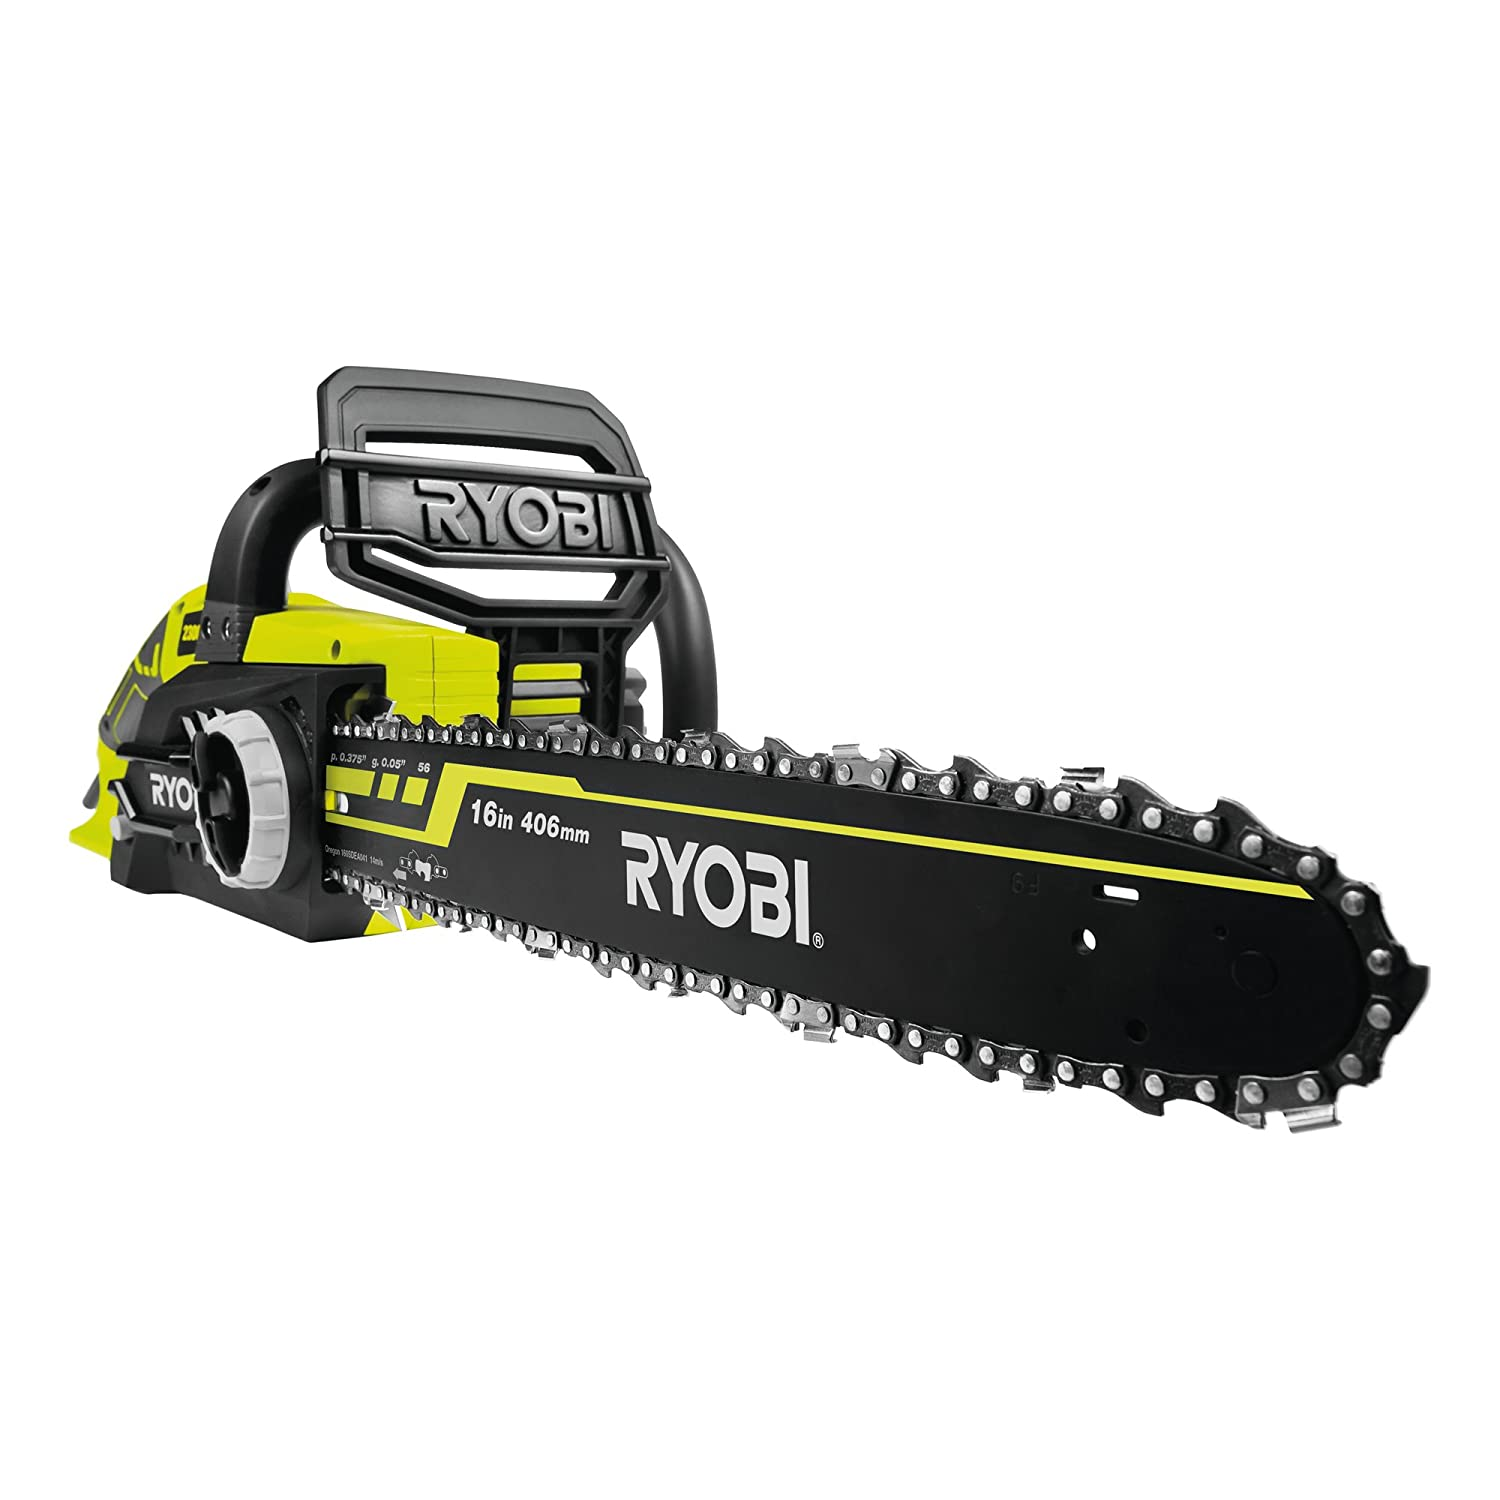 Ryobi rcs2340 chainsaw 2300 w greenblack amazon diy tools greentooth Images